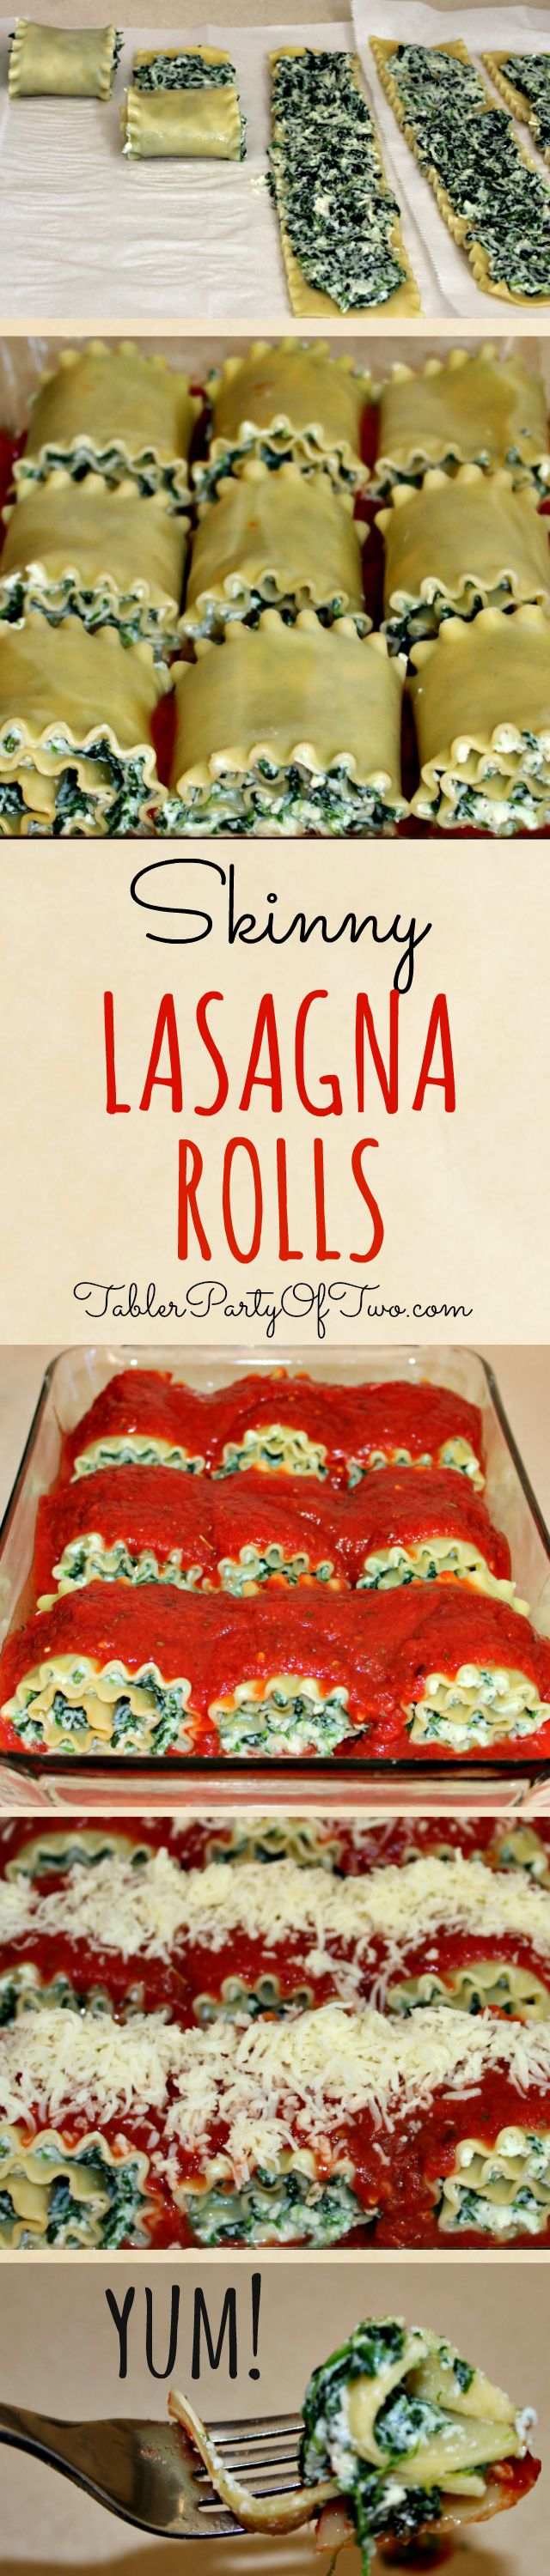 Lasagna and portion control MEET! This recipe is so YUM... a crowd pleaser! No guilt lasagna.... the best! TablerPartyofTwo.com